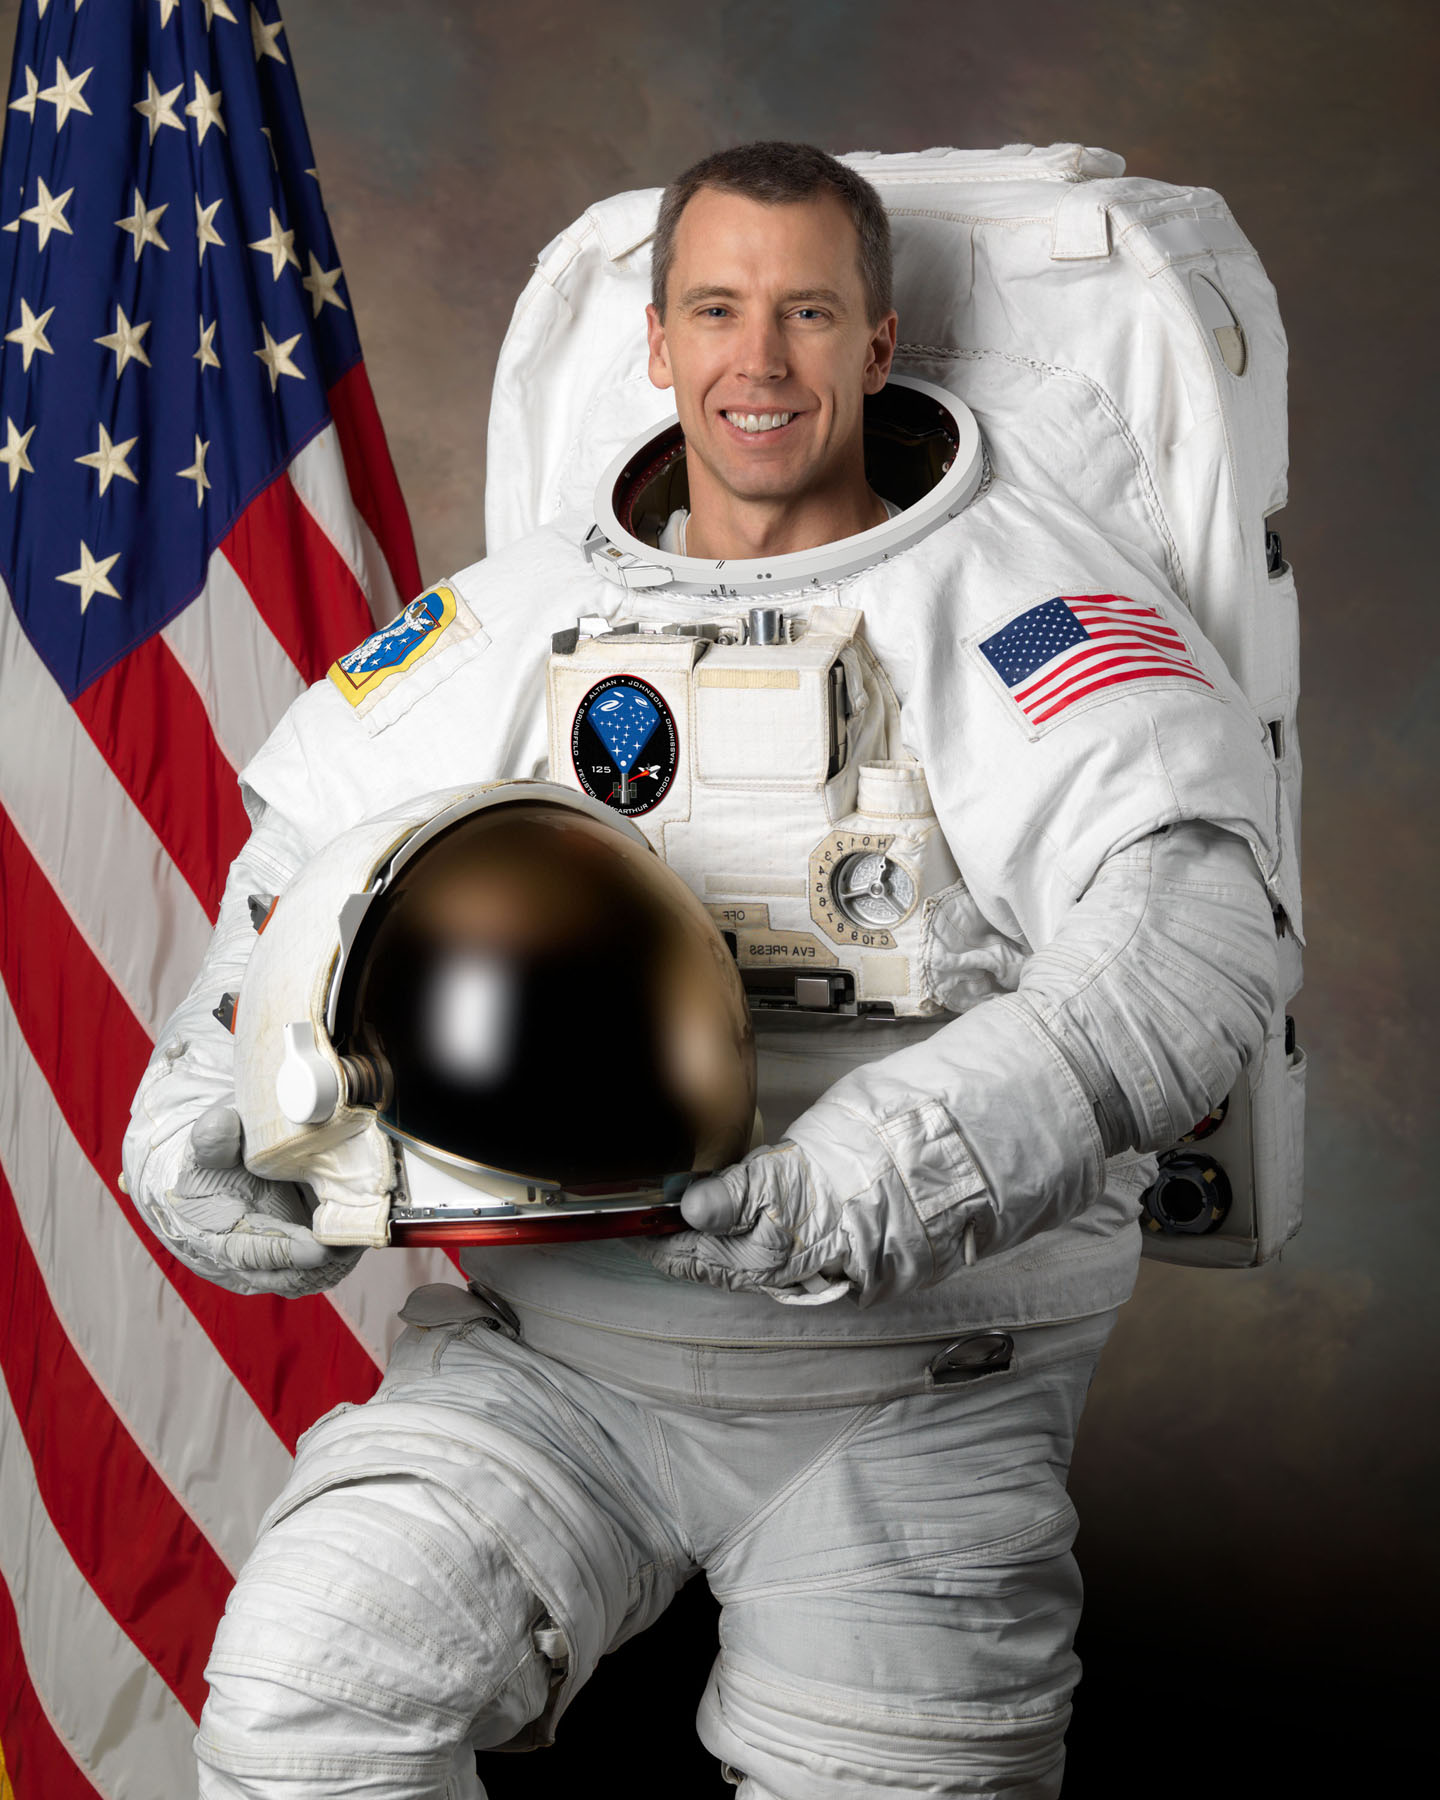 green space suits - photo #26